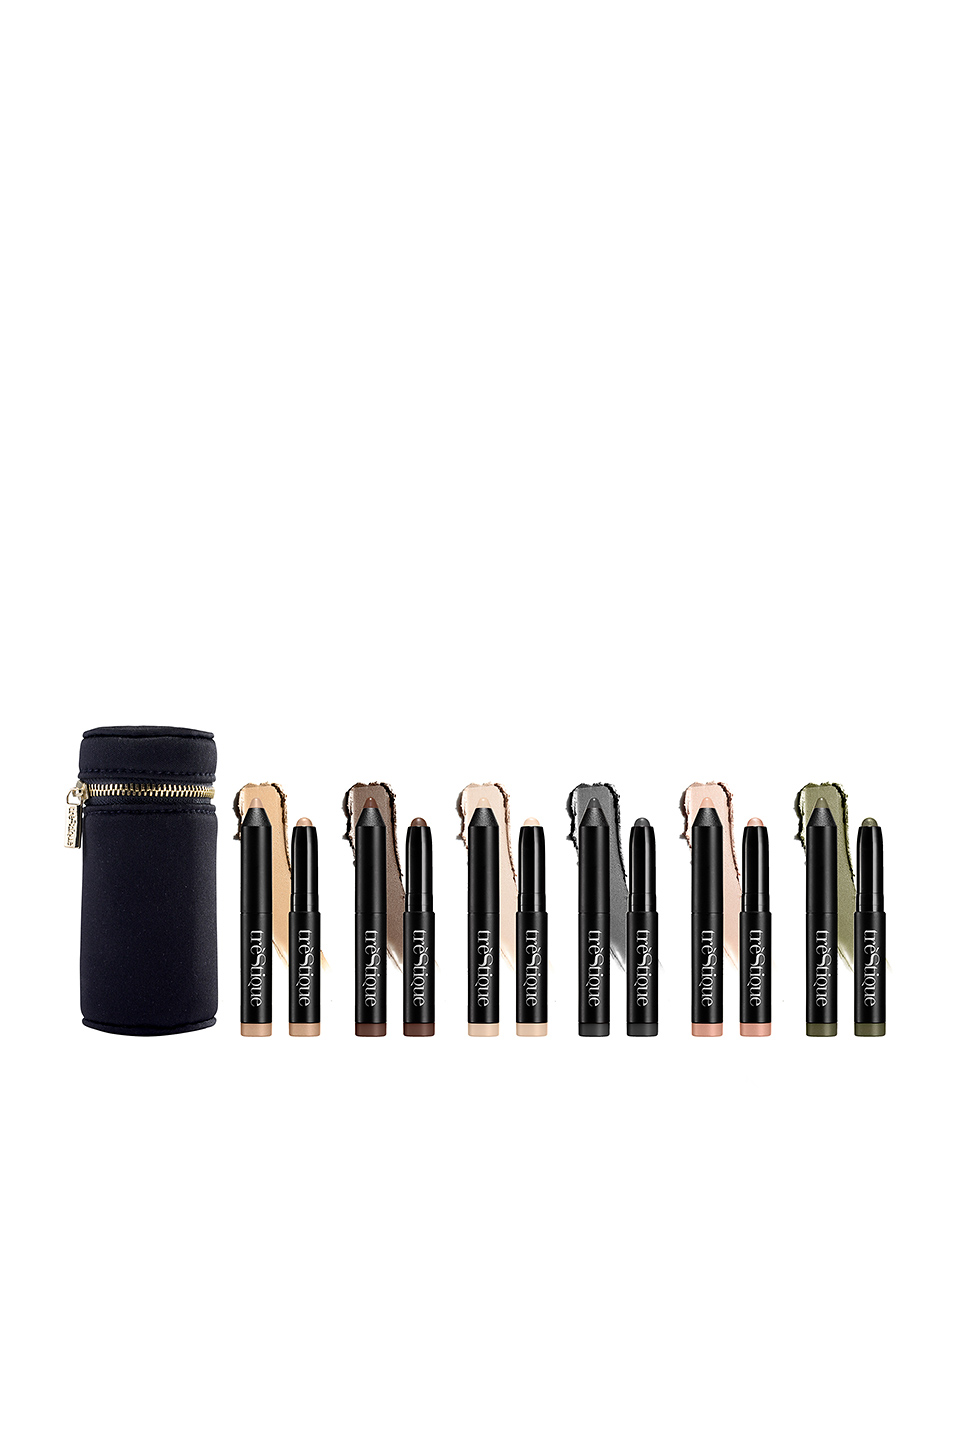 treStiQue Mini Shadow Crayon Set in